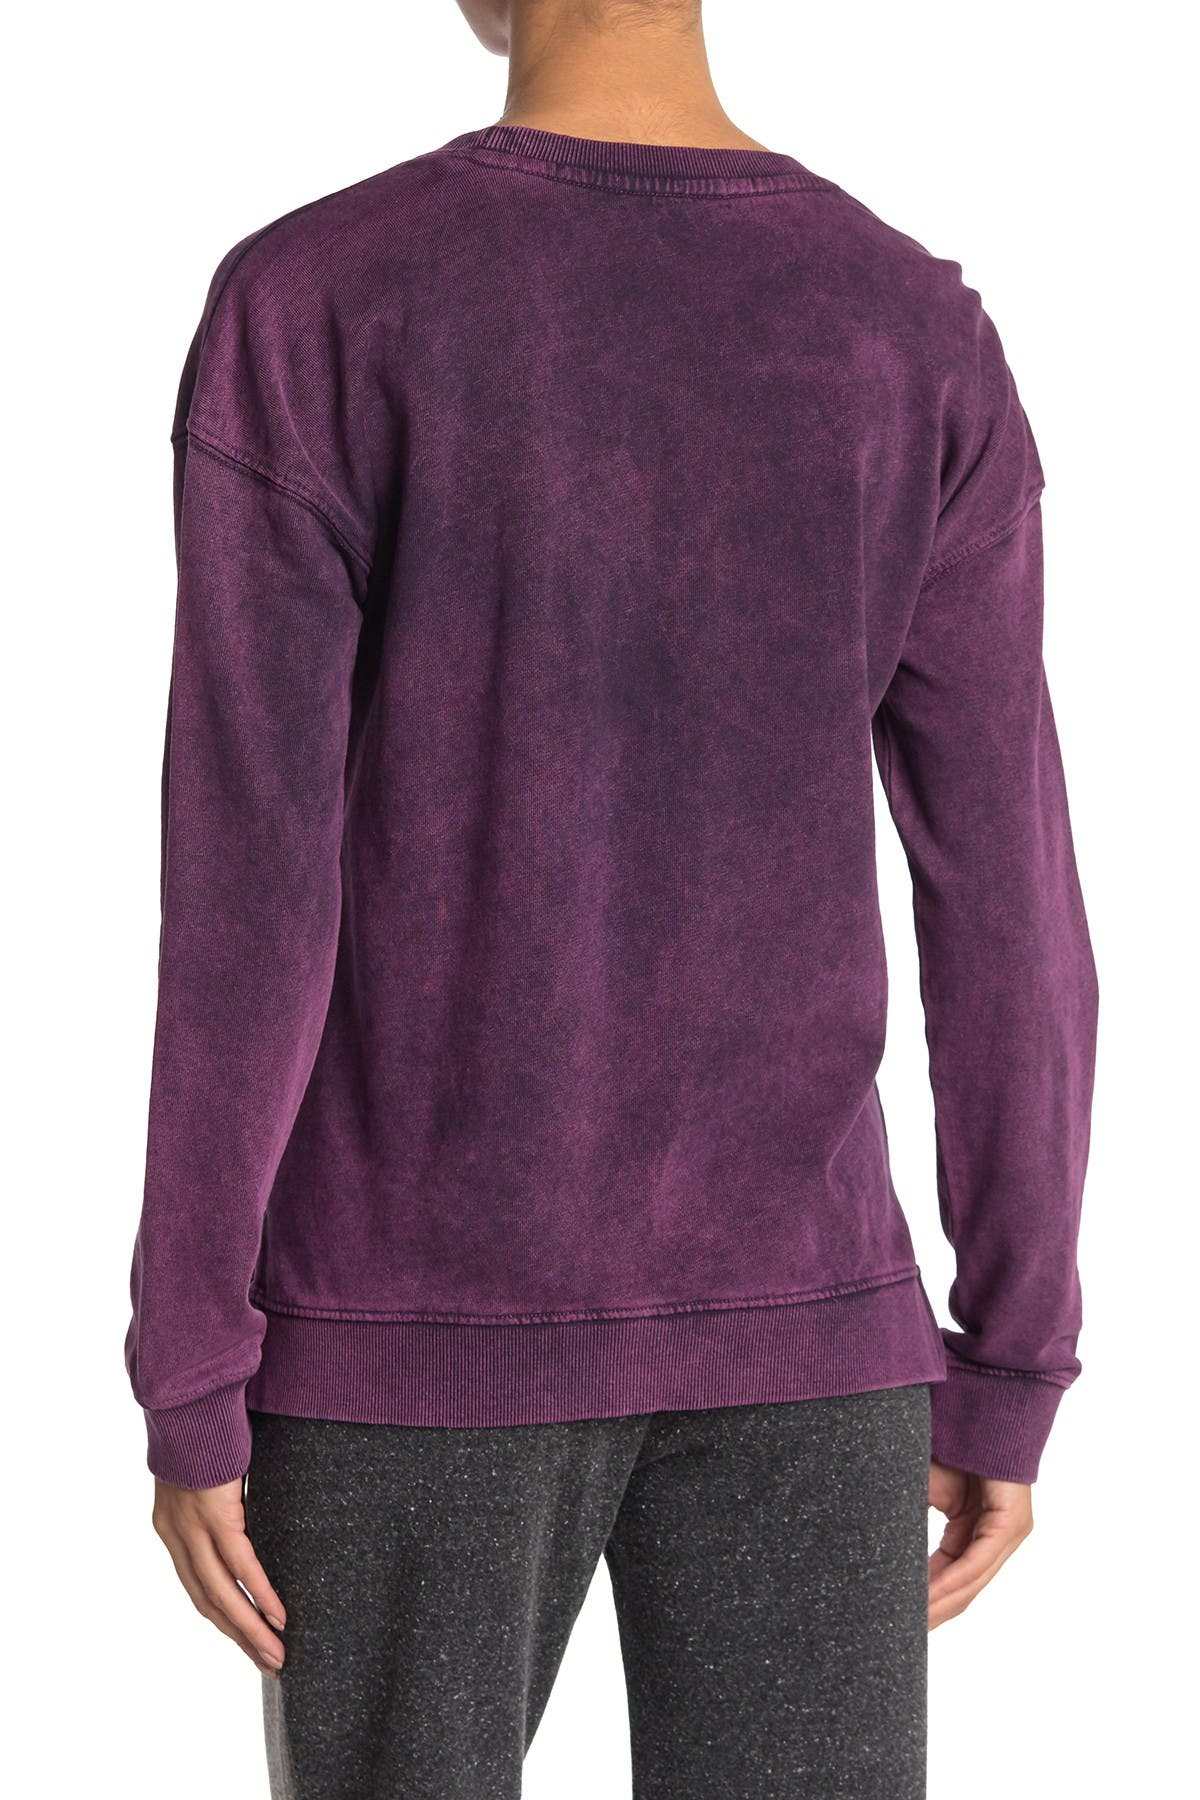 Image of Threads 4 Thought Effie Mineral Wash Pullover Sweatshirt